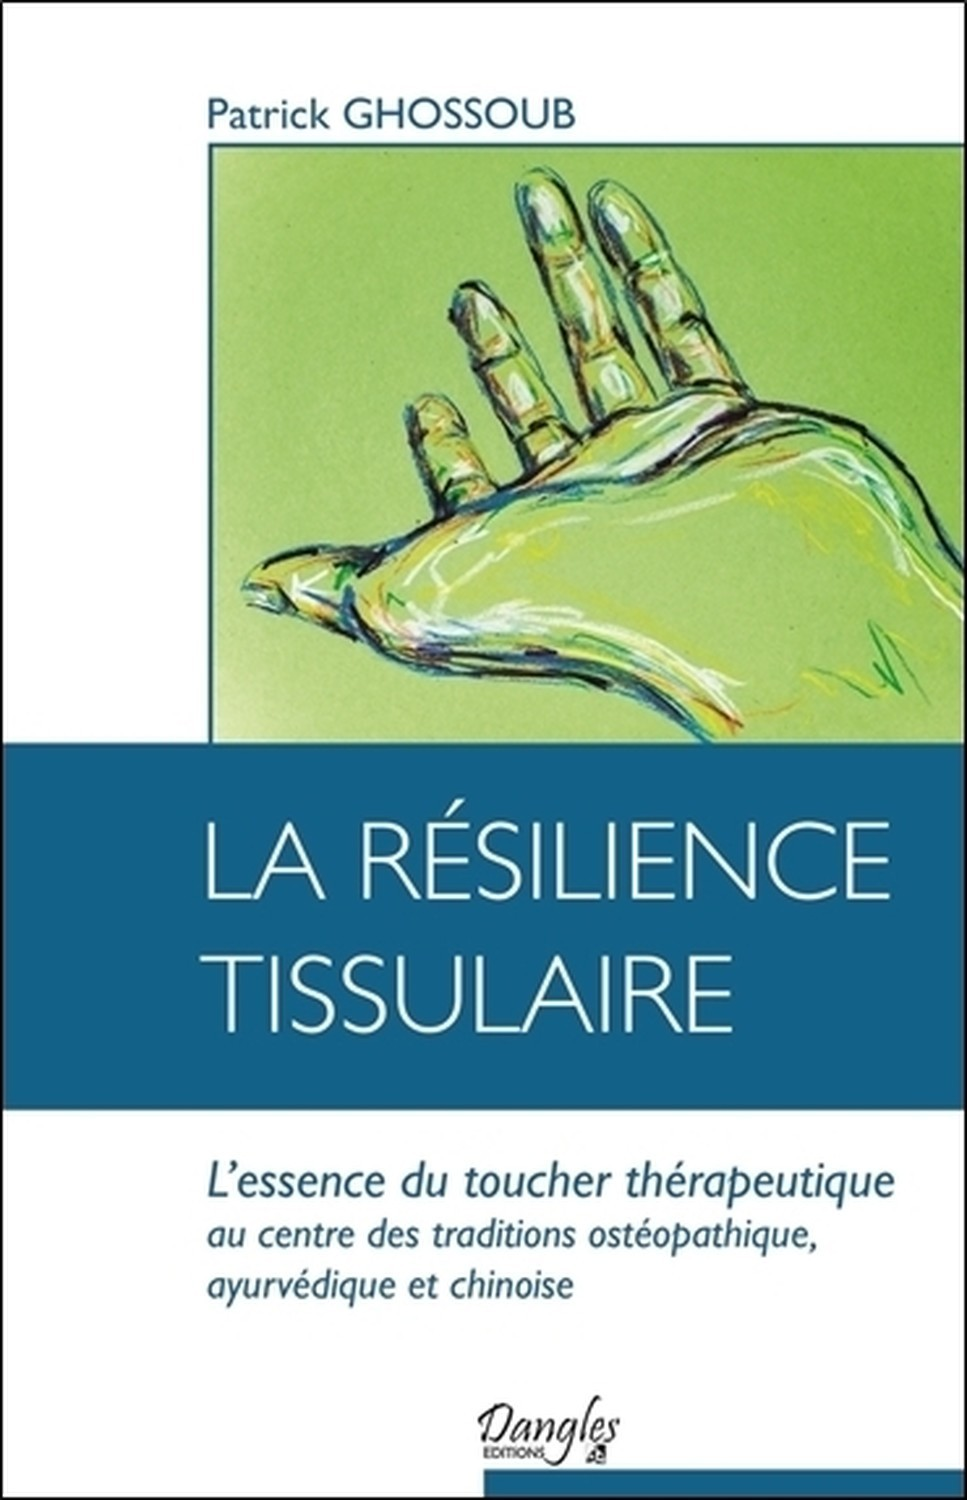 LA RESILIENCE TISSULAIRE - L'ESSENCE DU TOUCHER THERAPEUTIQUE